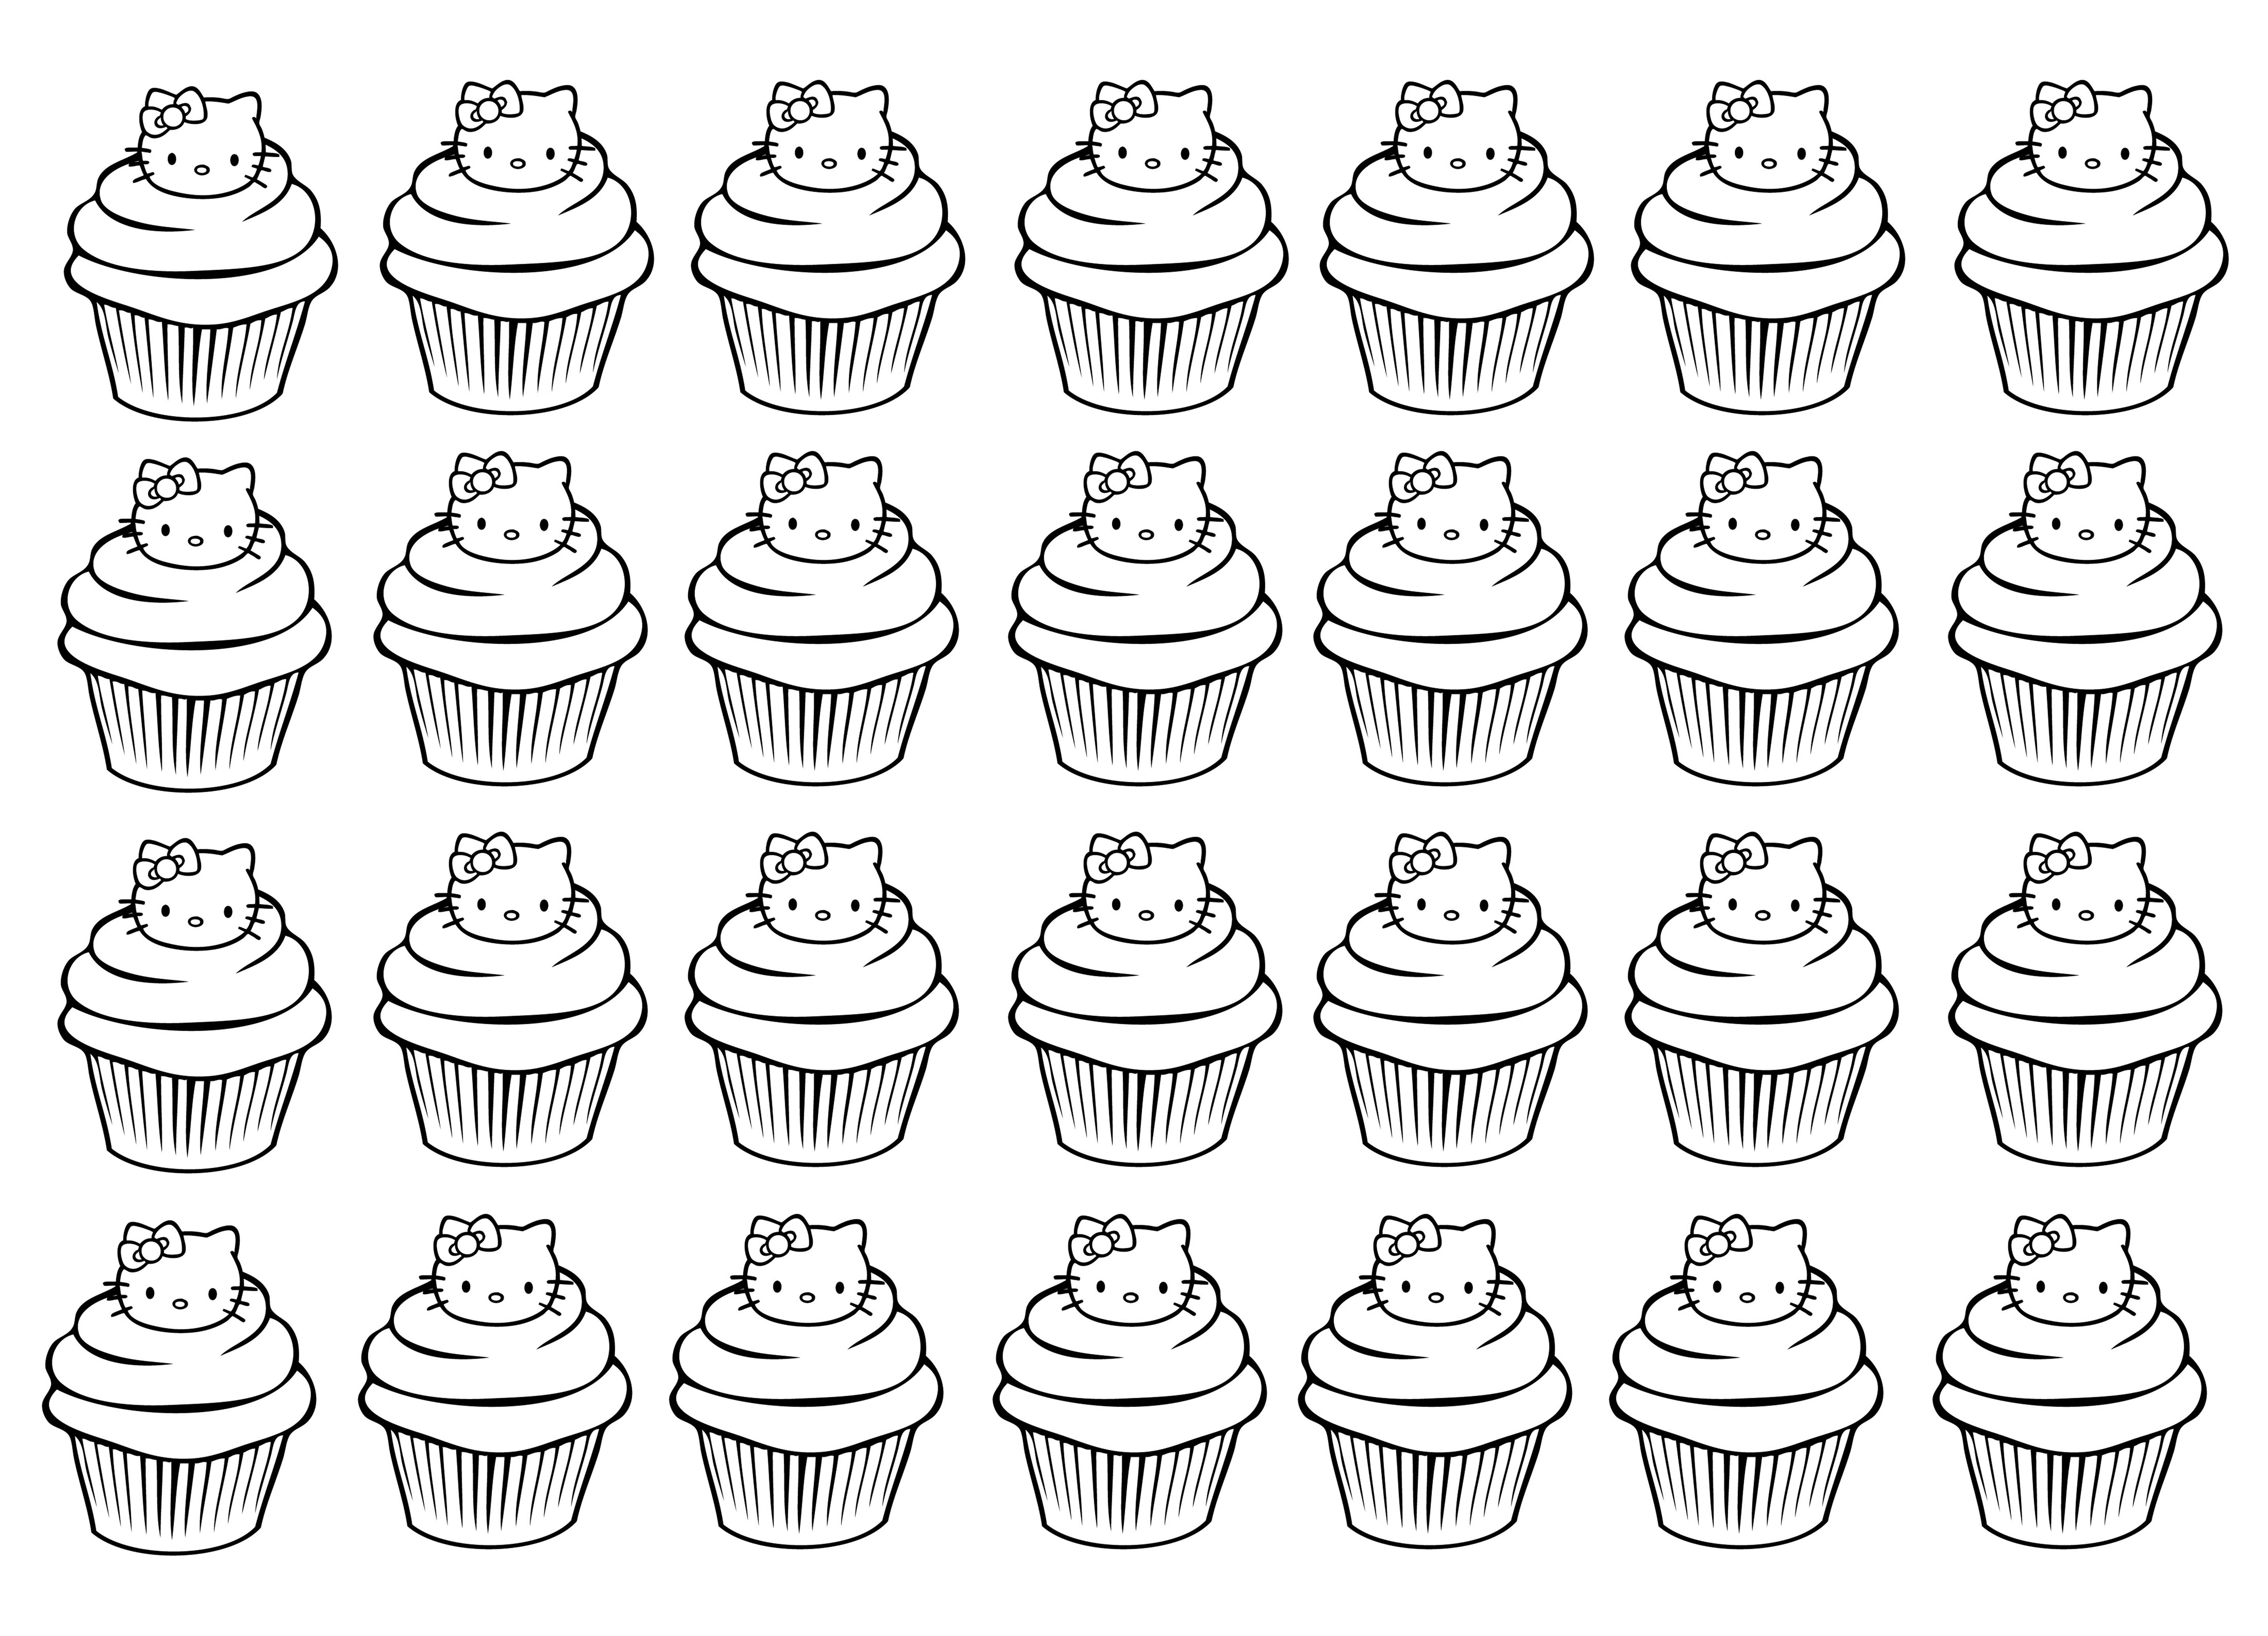 Cupcakes Hello Kitty Complexe Cupcakes Et Gateaux Coloriages